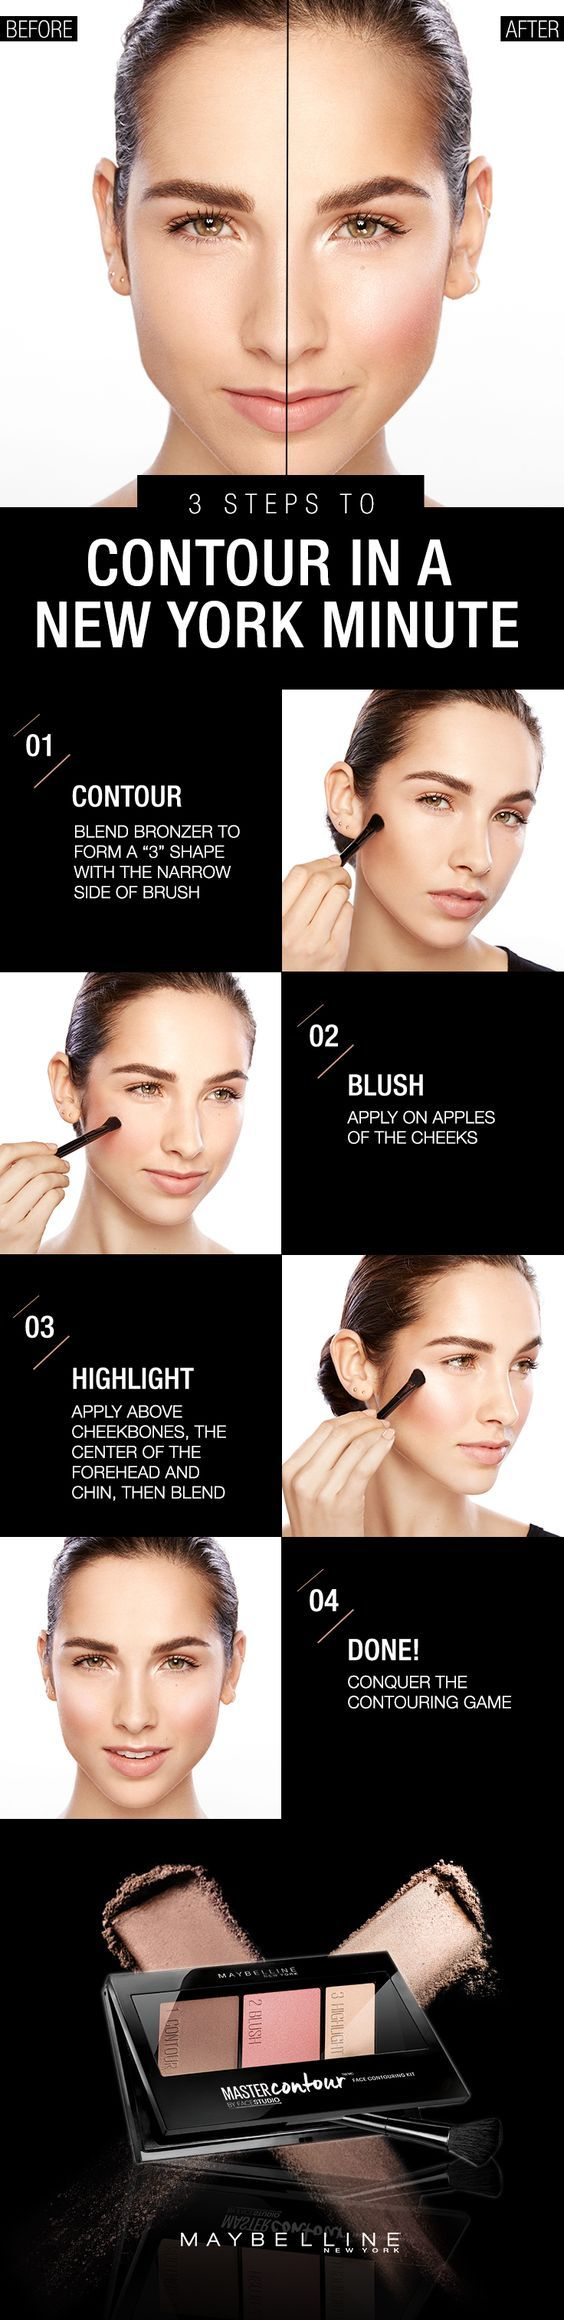 """Contour and Highlight with ease with the Maybelline's Master Contour Face Contouring Kit. It is the easiest way to conquer the day, New York style. Step 1: Start with the bronzer and form a """"3"""" shape along the hairline, under the cheekbones and finish at the jawline. Step 2: Apply blush on apples of the cheeks. Step 3: Use the brush to highlight above cheekbones, the center of the forehead, the bridge of nose and the chin. Blend well and done. Click through for more contouring and…"""